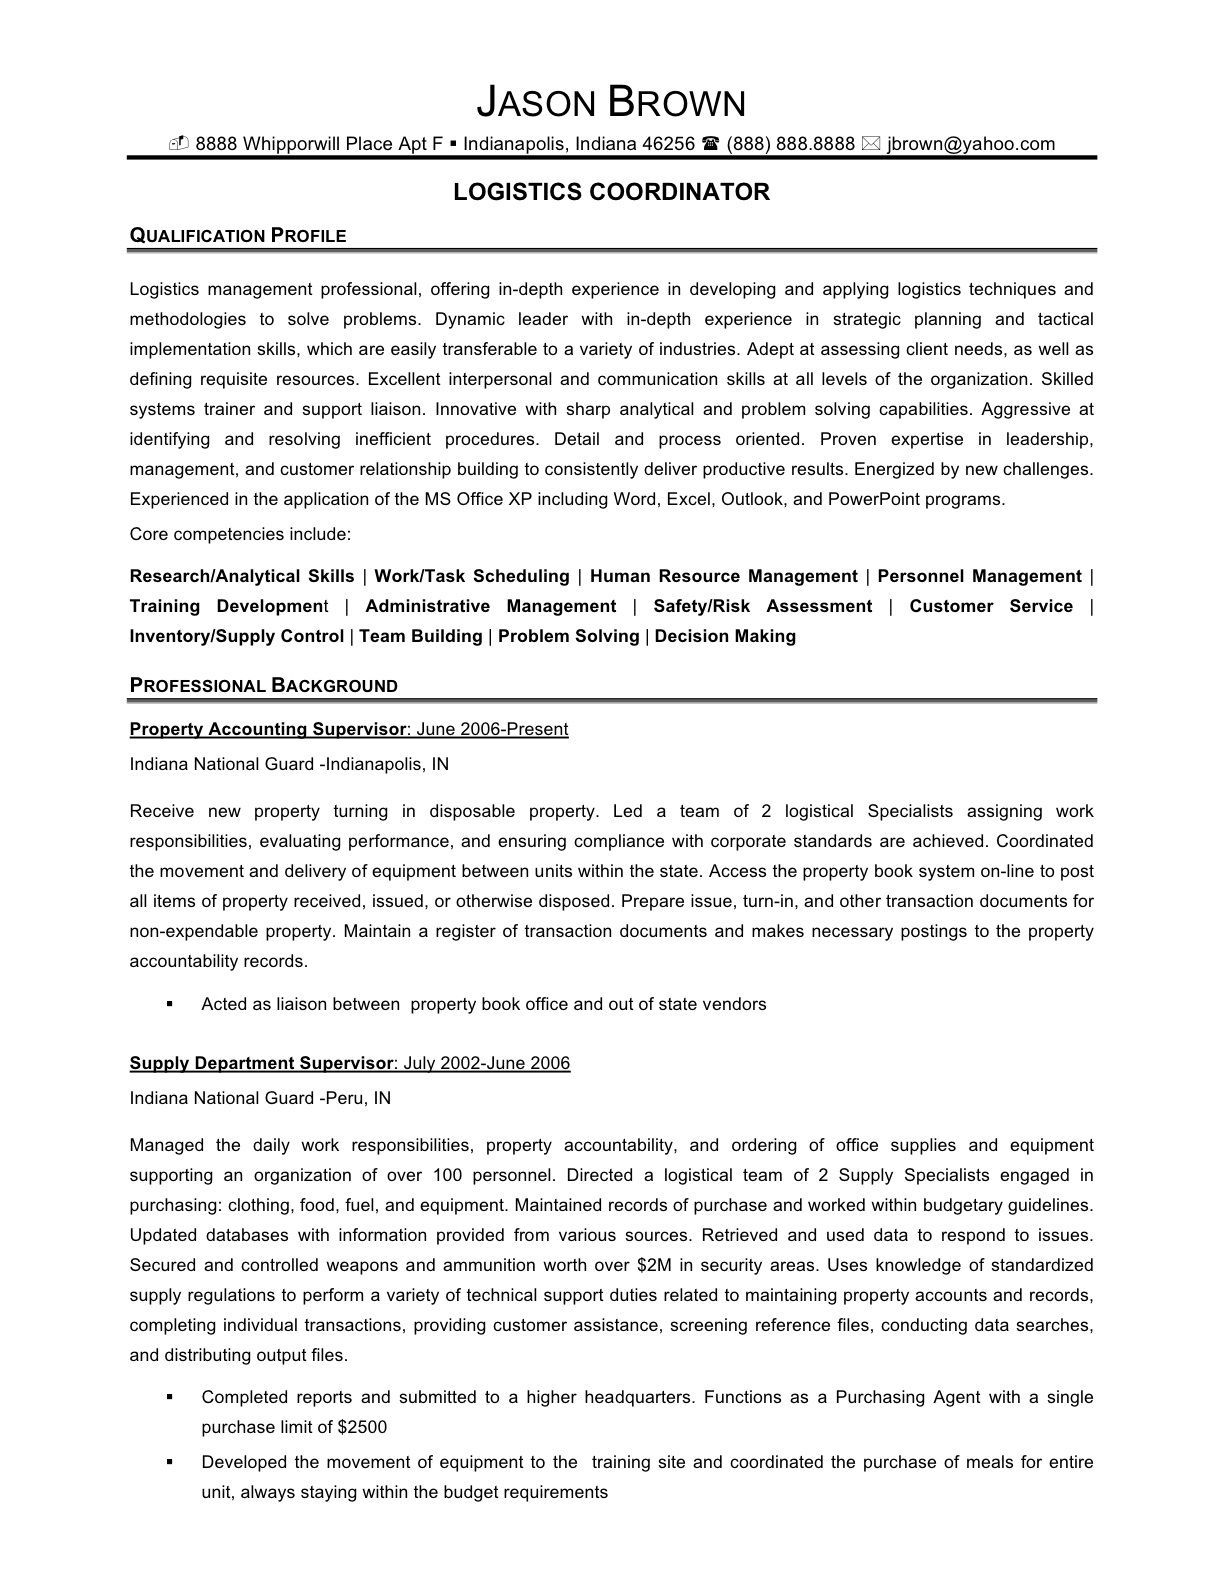 Pin By Rebecca Nichols On Resumes In 2020 Logistics Management Manager Resume Resume Objective